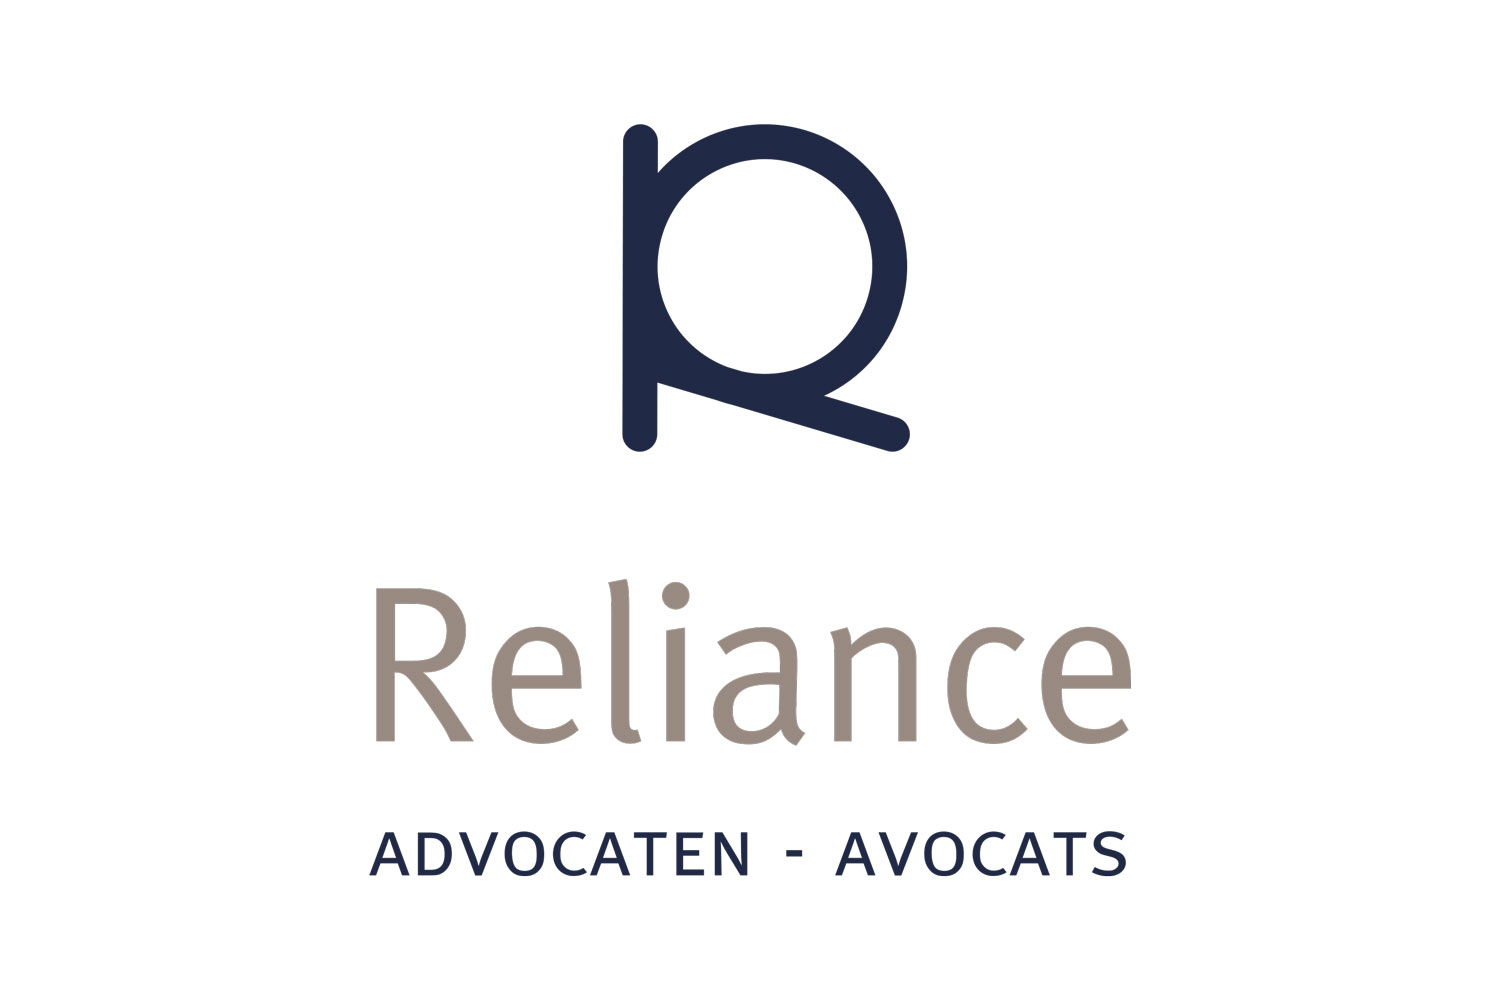 2_crabgraphic_logo_Reliance